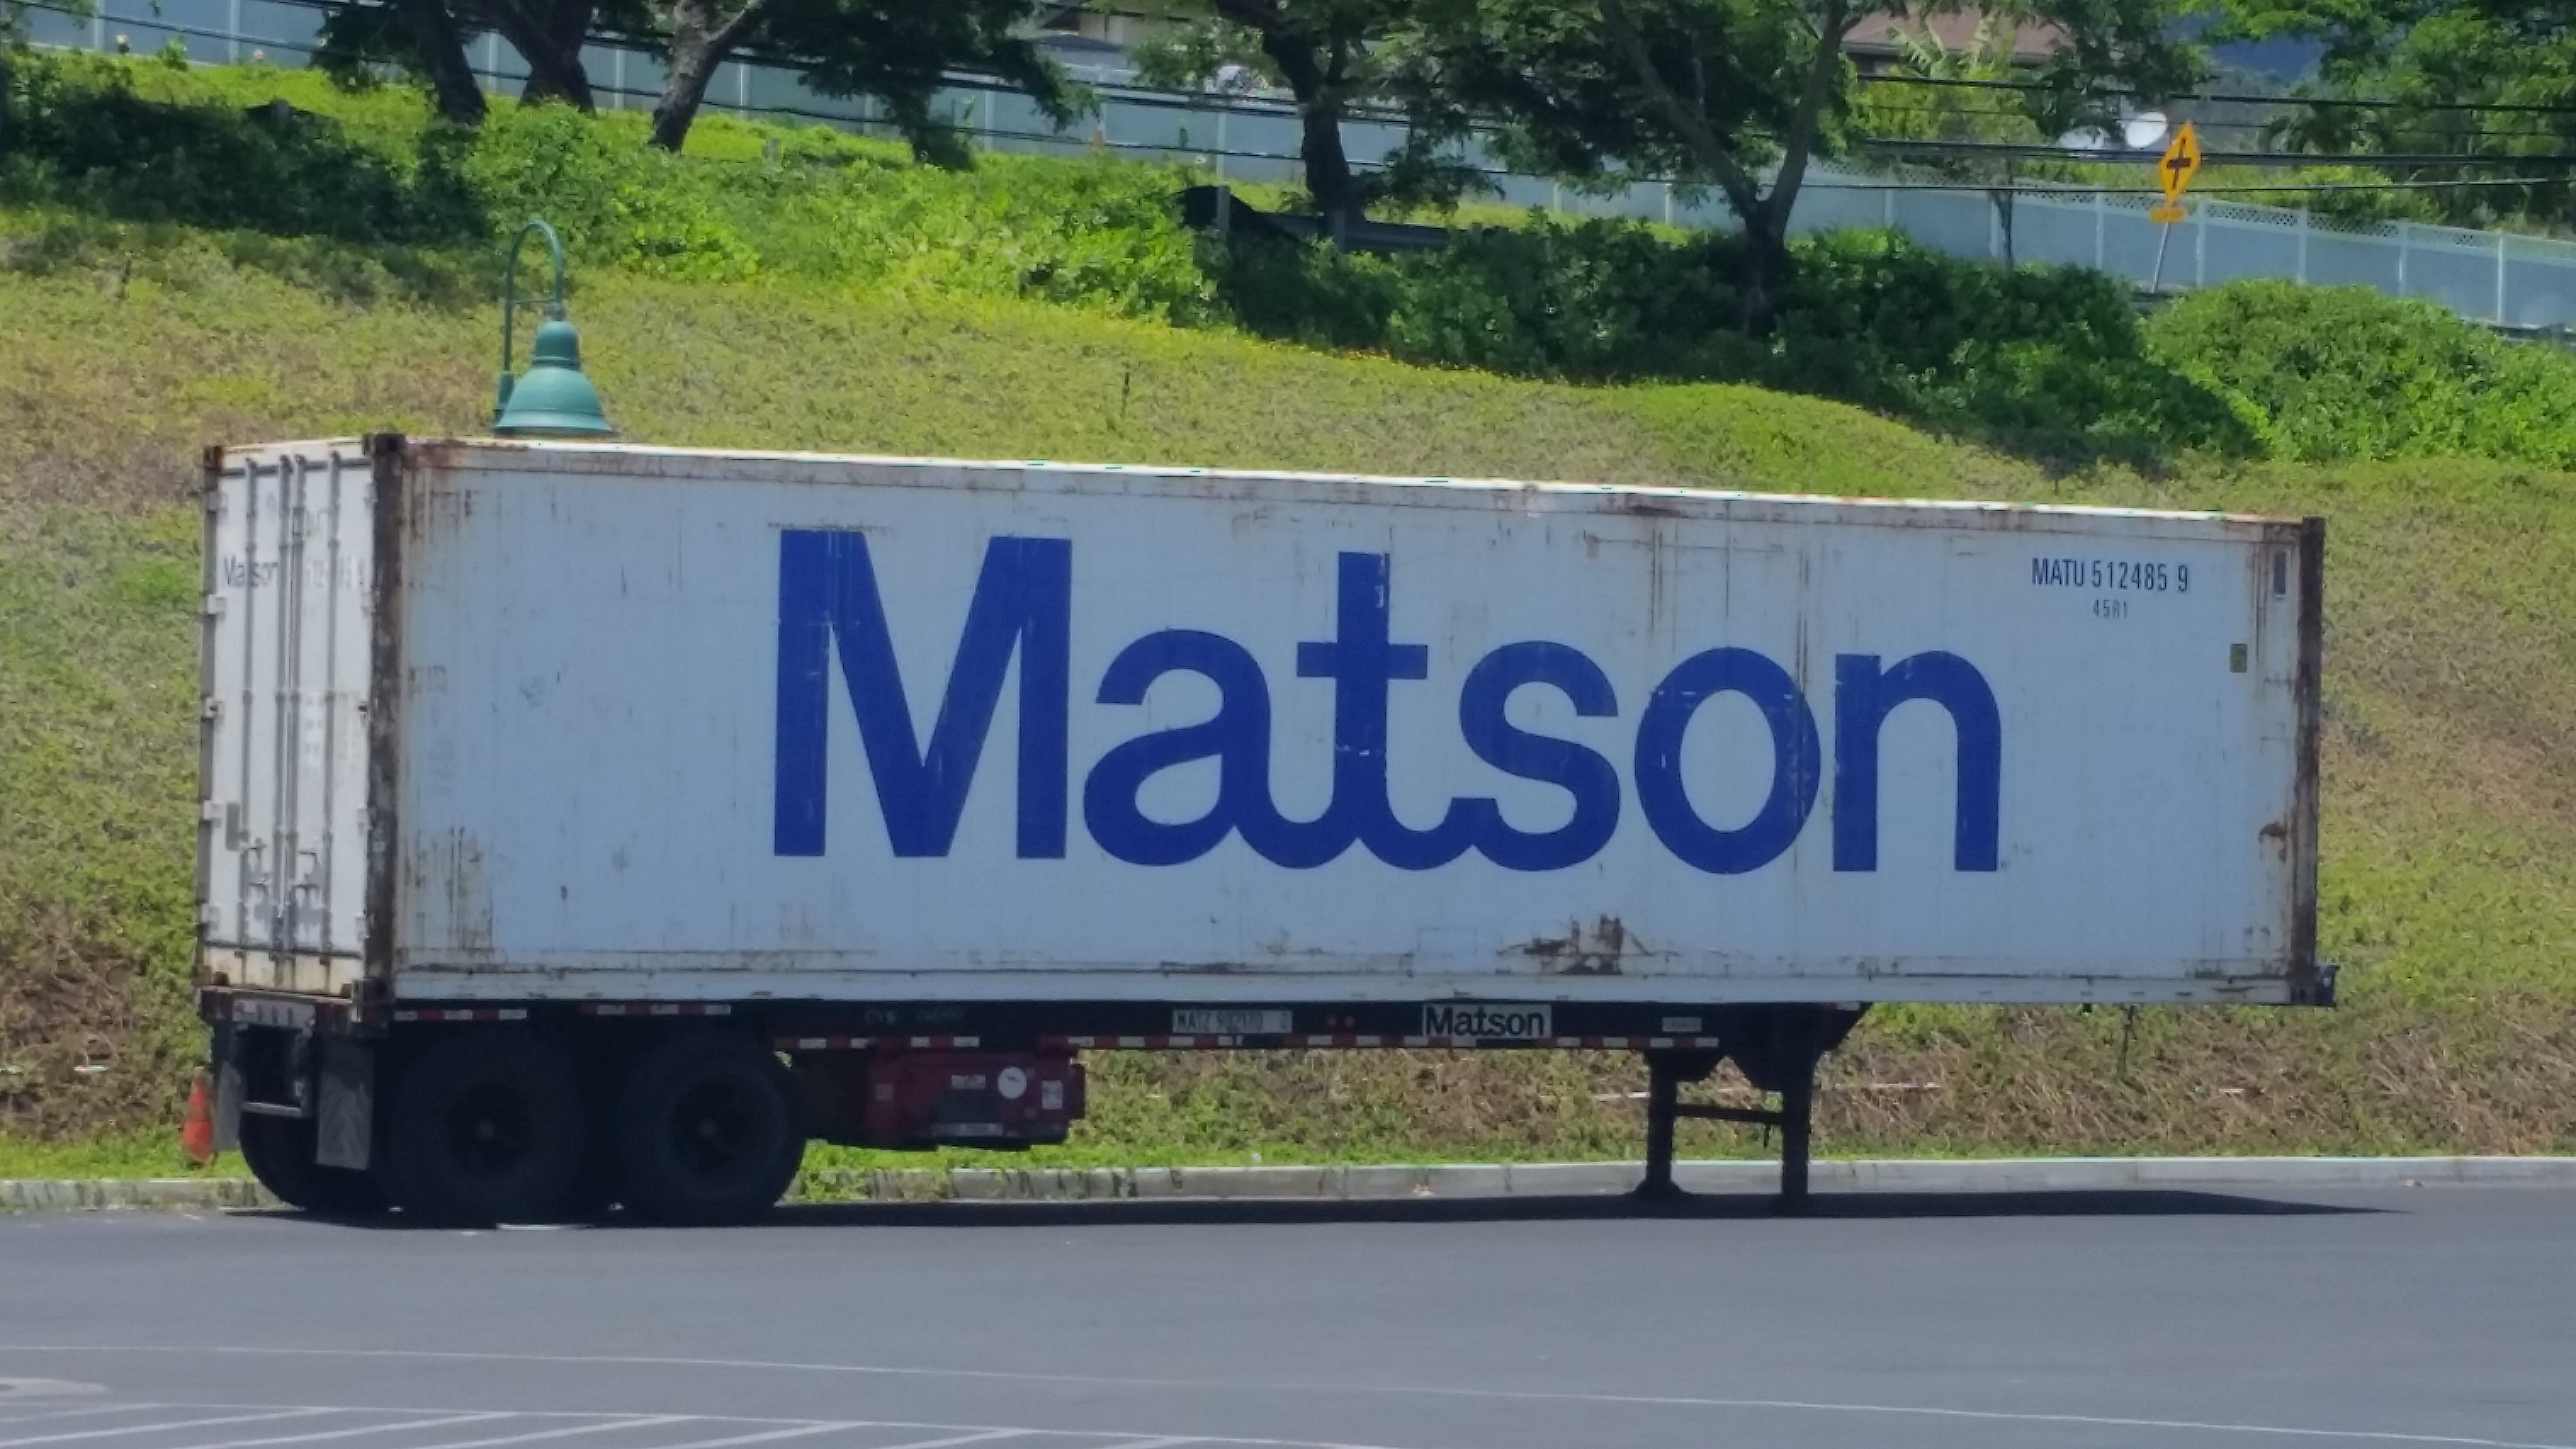 Matson Third Quarter Dividend Up 5% To $0.21 Per Share